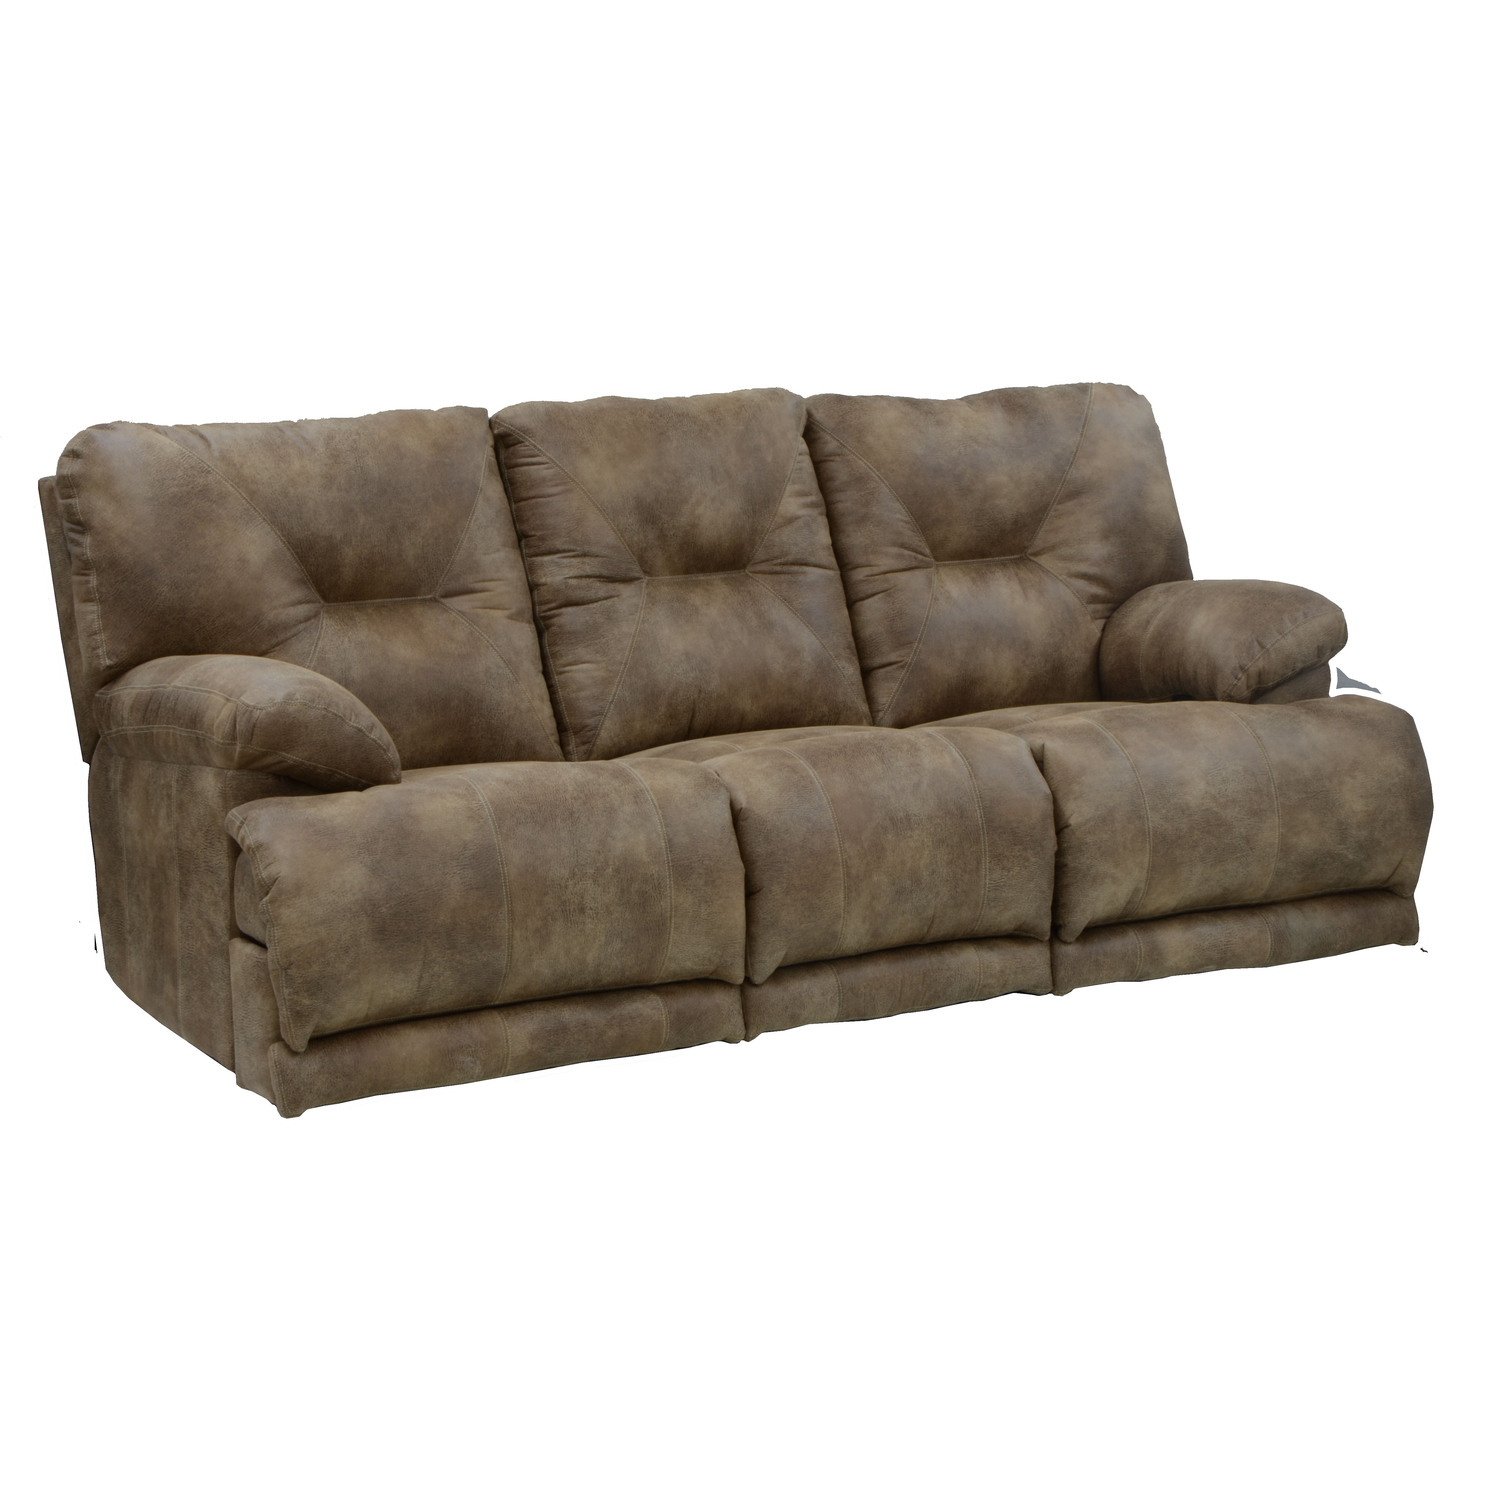 Catnapper voyager sofa with 3 recliners by oj commerce for Catnapper cloud nine chaise recliner